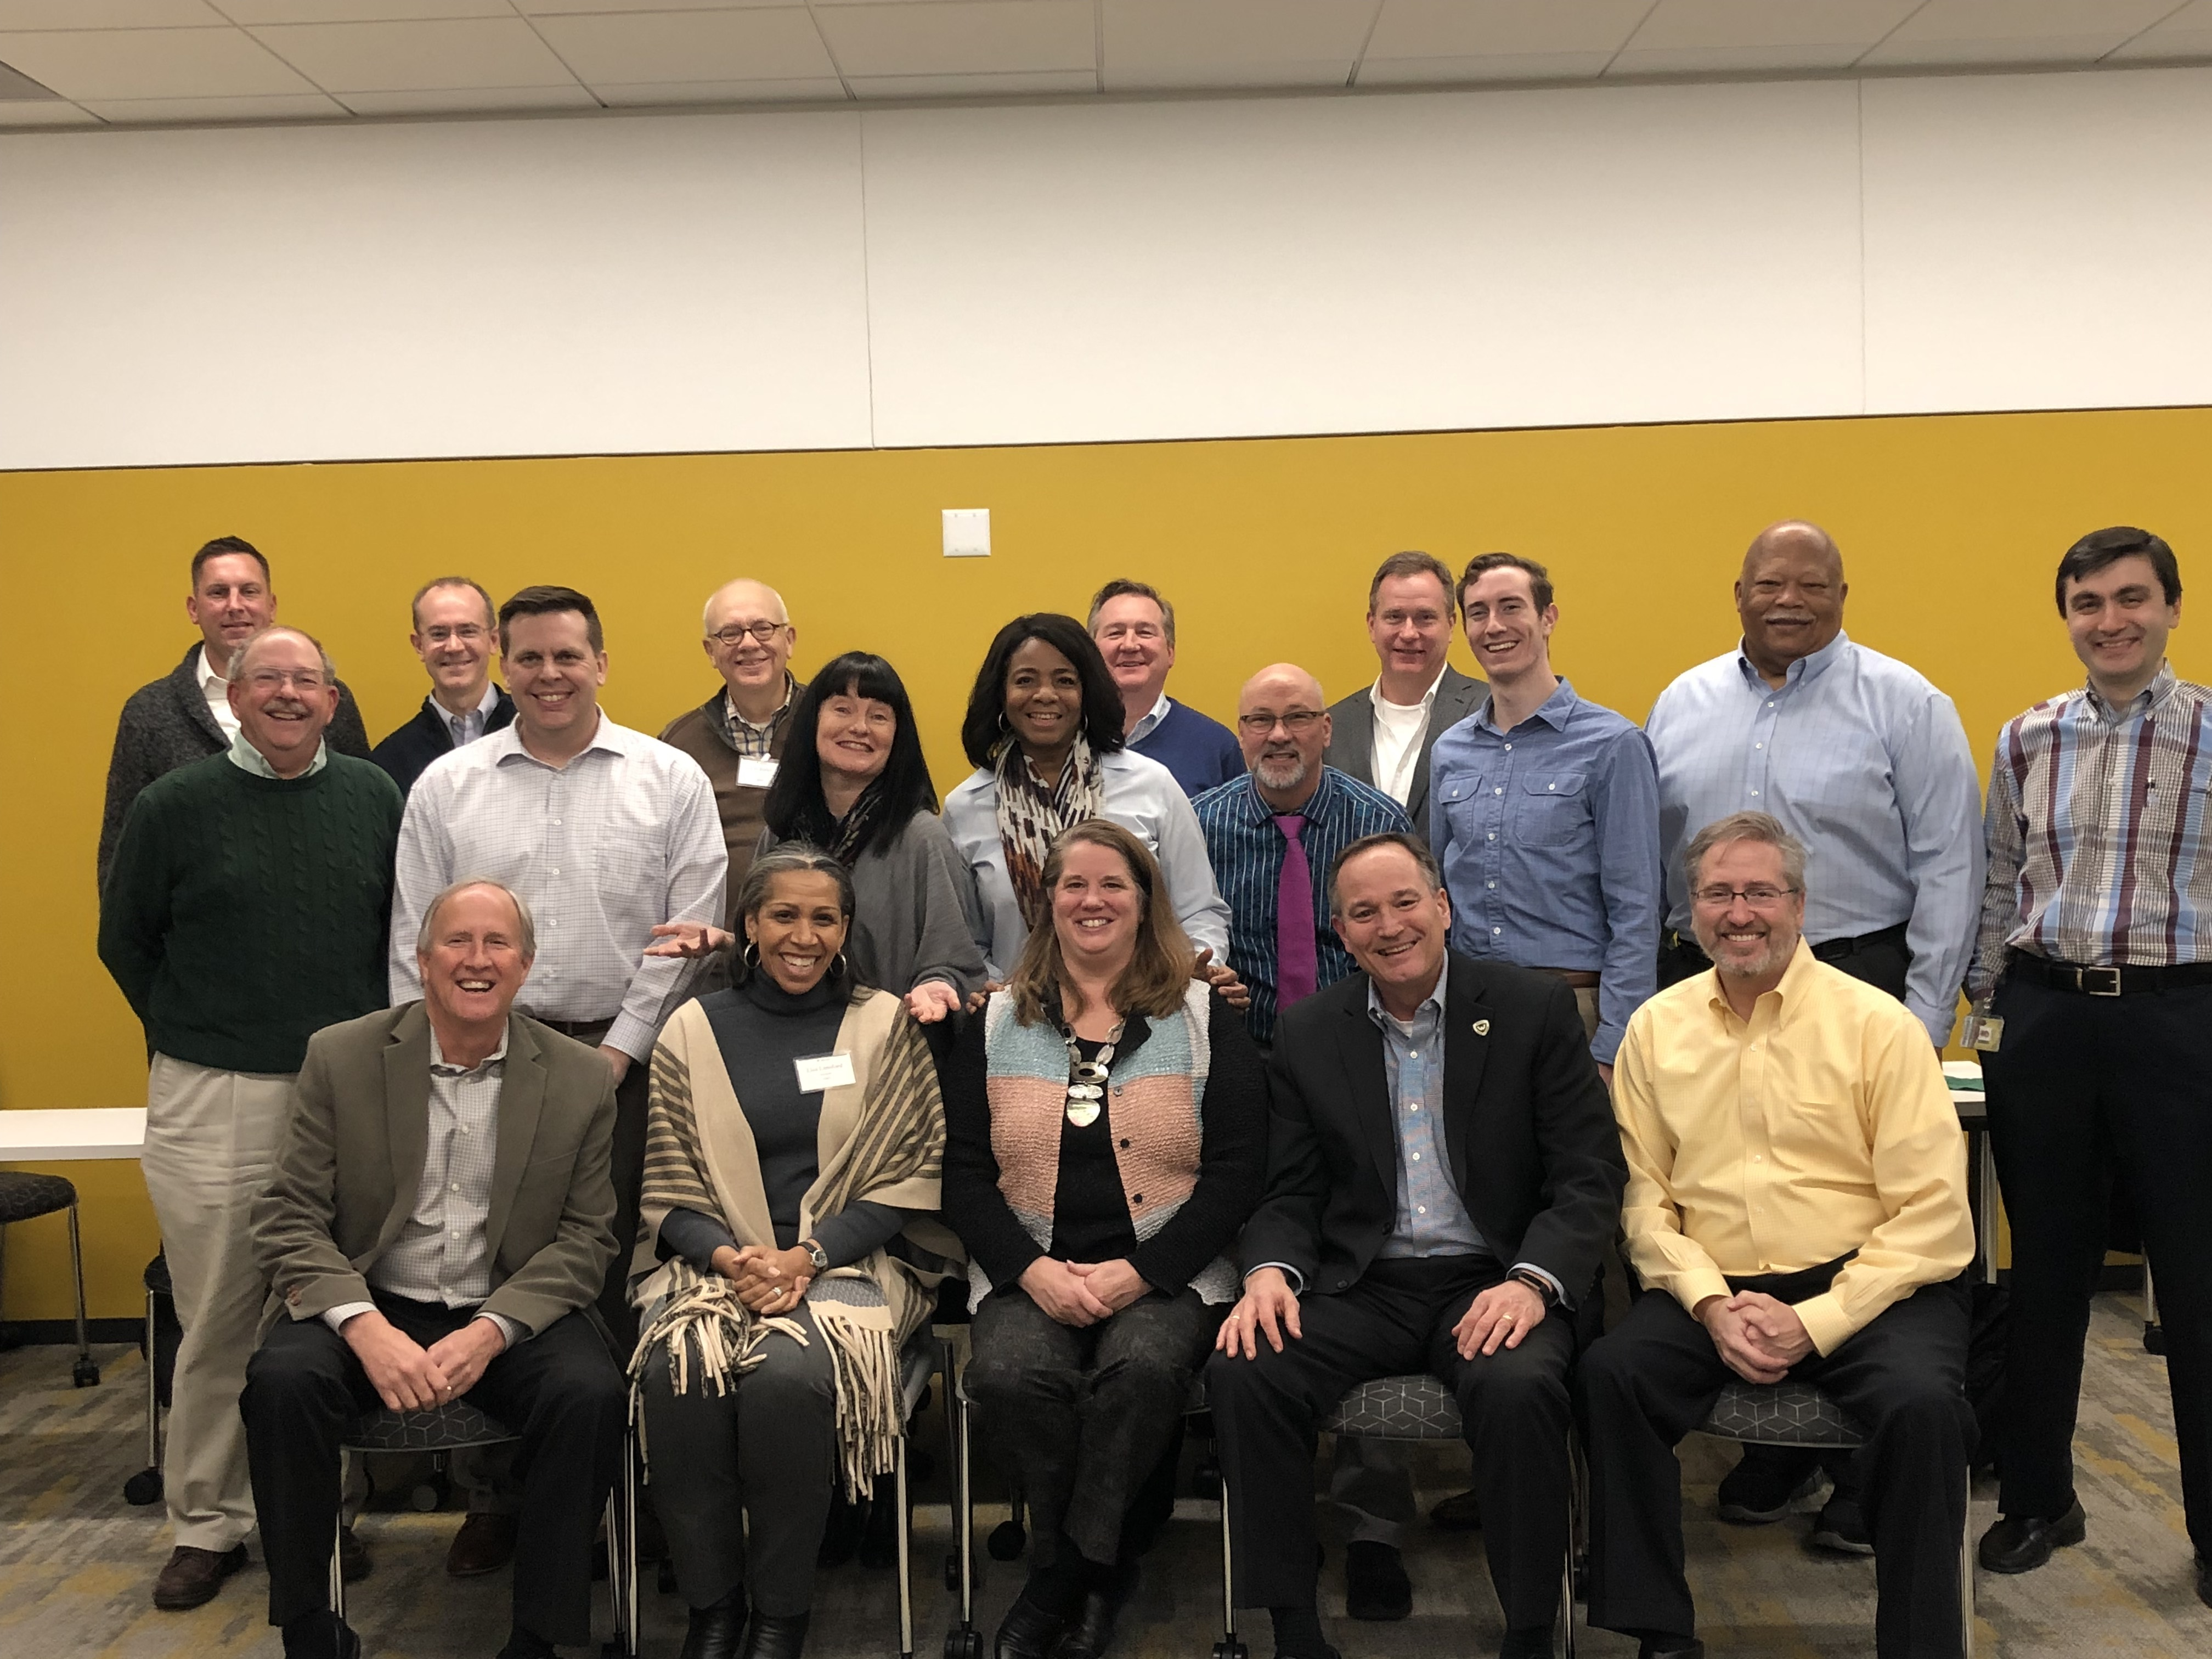 Wayne State University Mike Ilitch School of Business Global Supply Chain Advisory Board